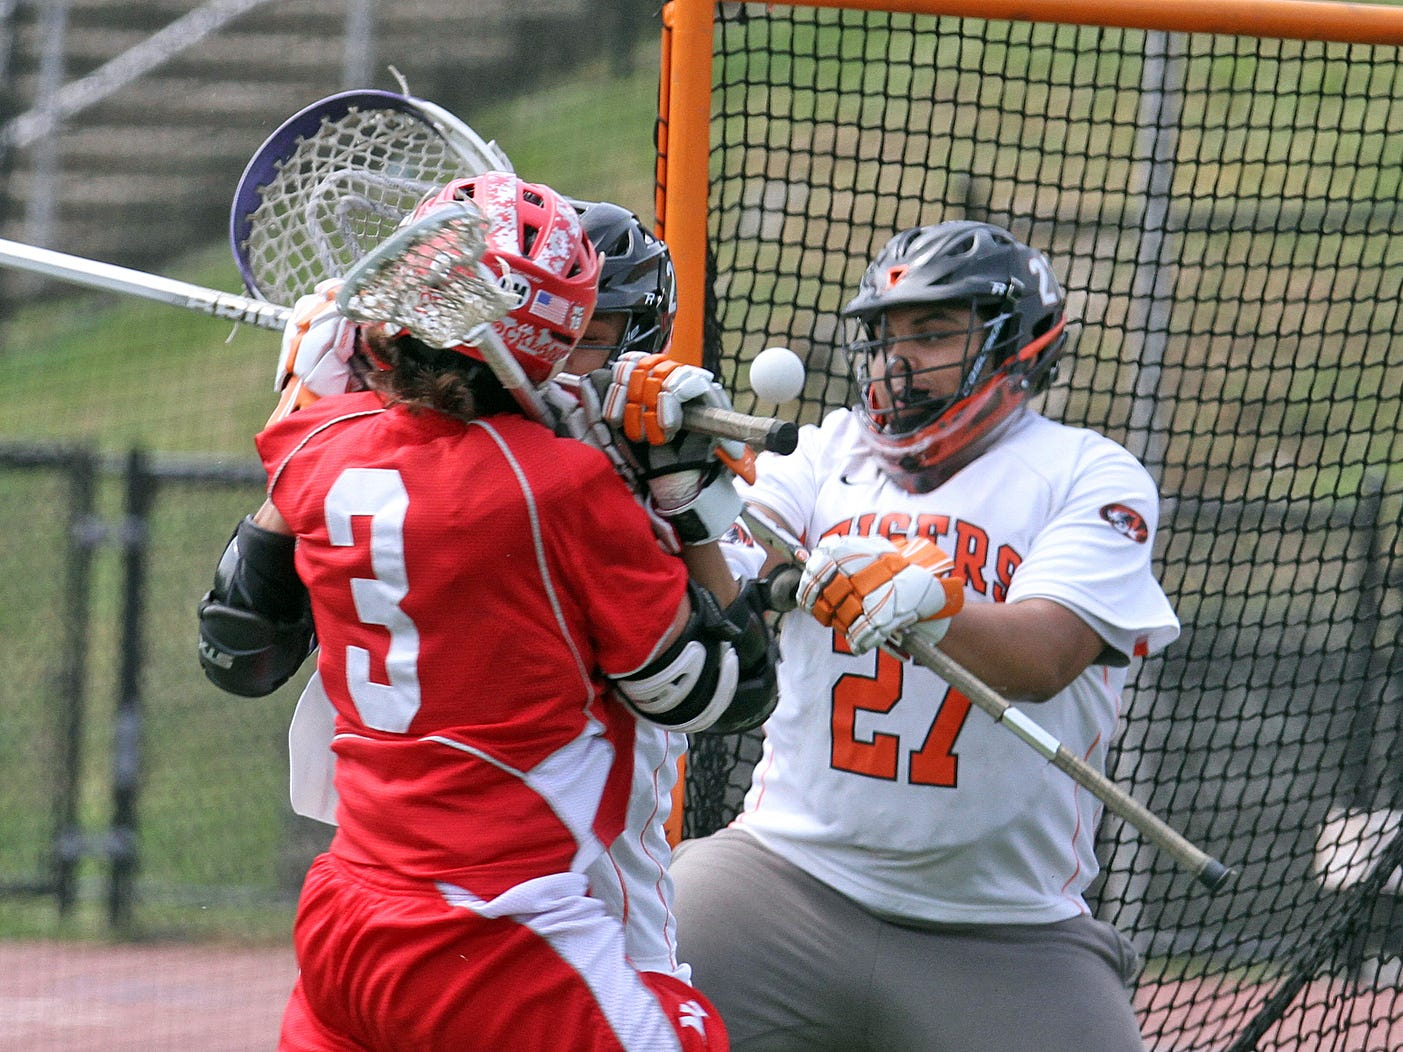 White Plains goalie James Magana makes save on North Rockland's Tyler Senatore during a Section 1 Class A quarterfinal at White Plains High School May 16, 2015.